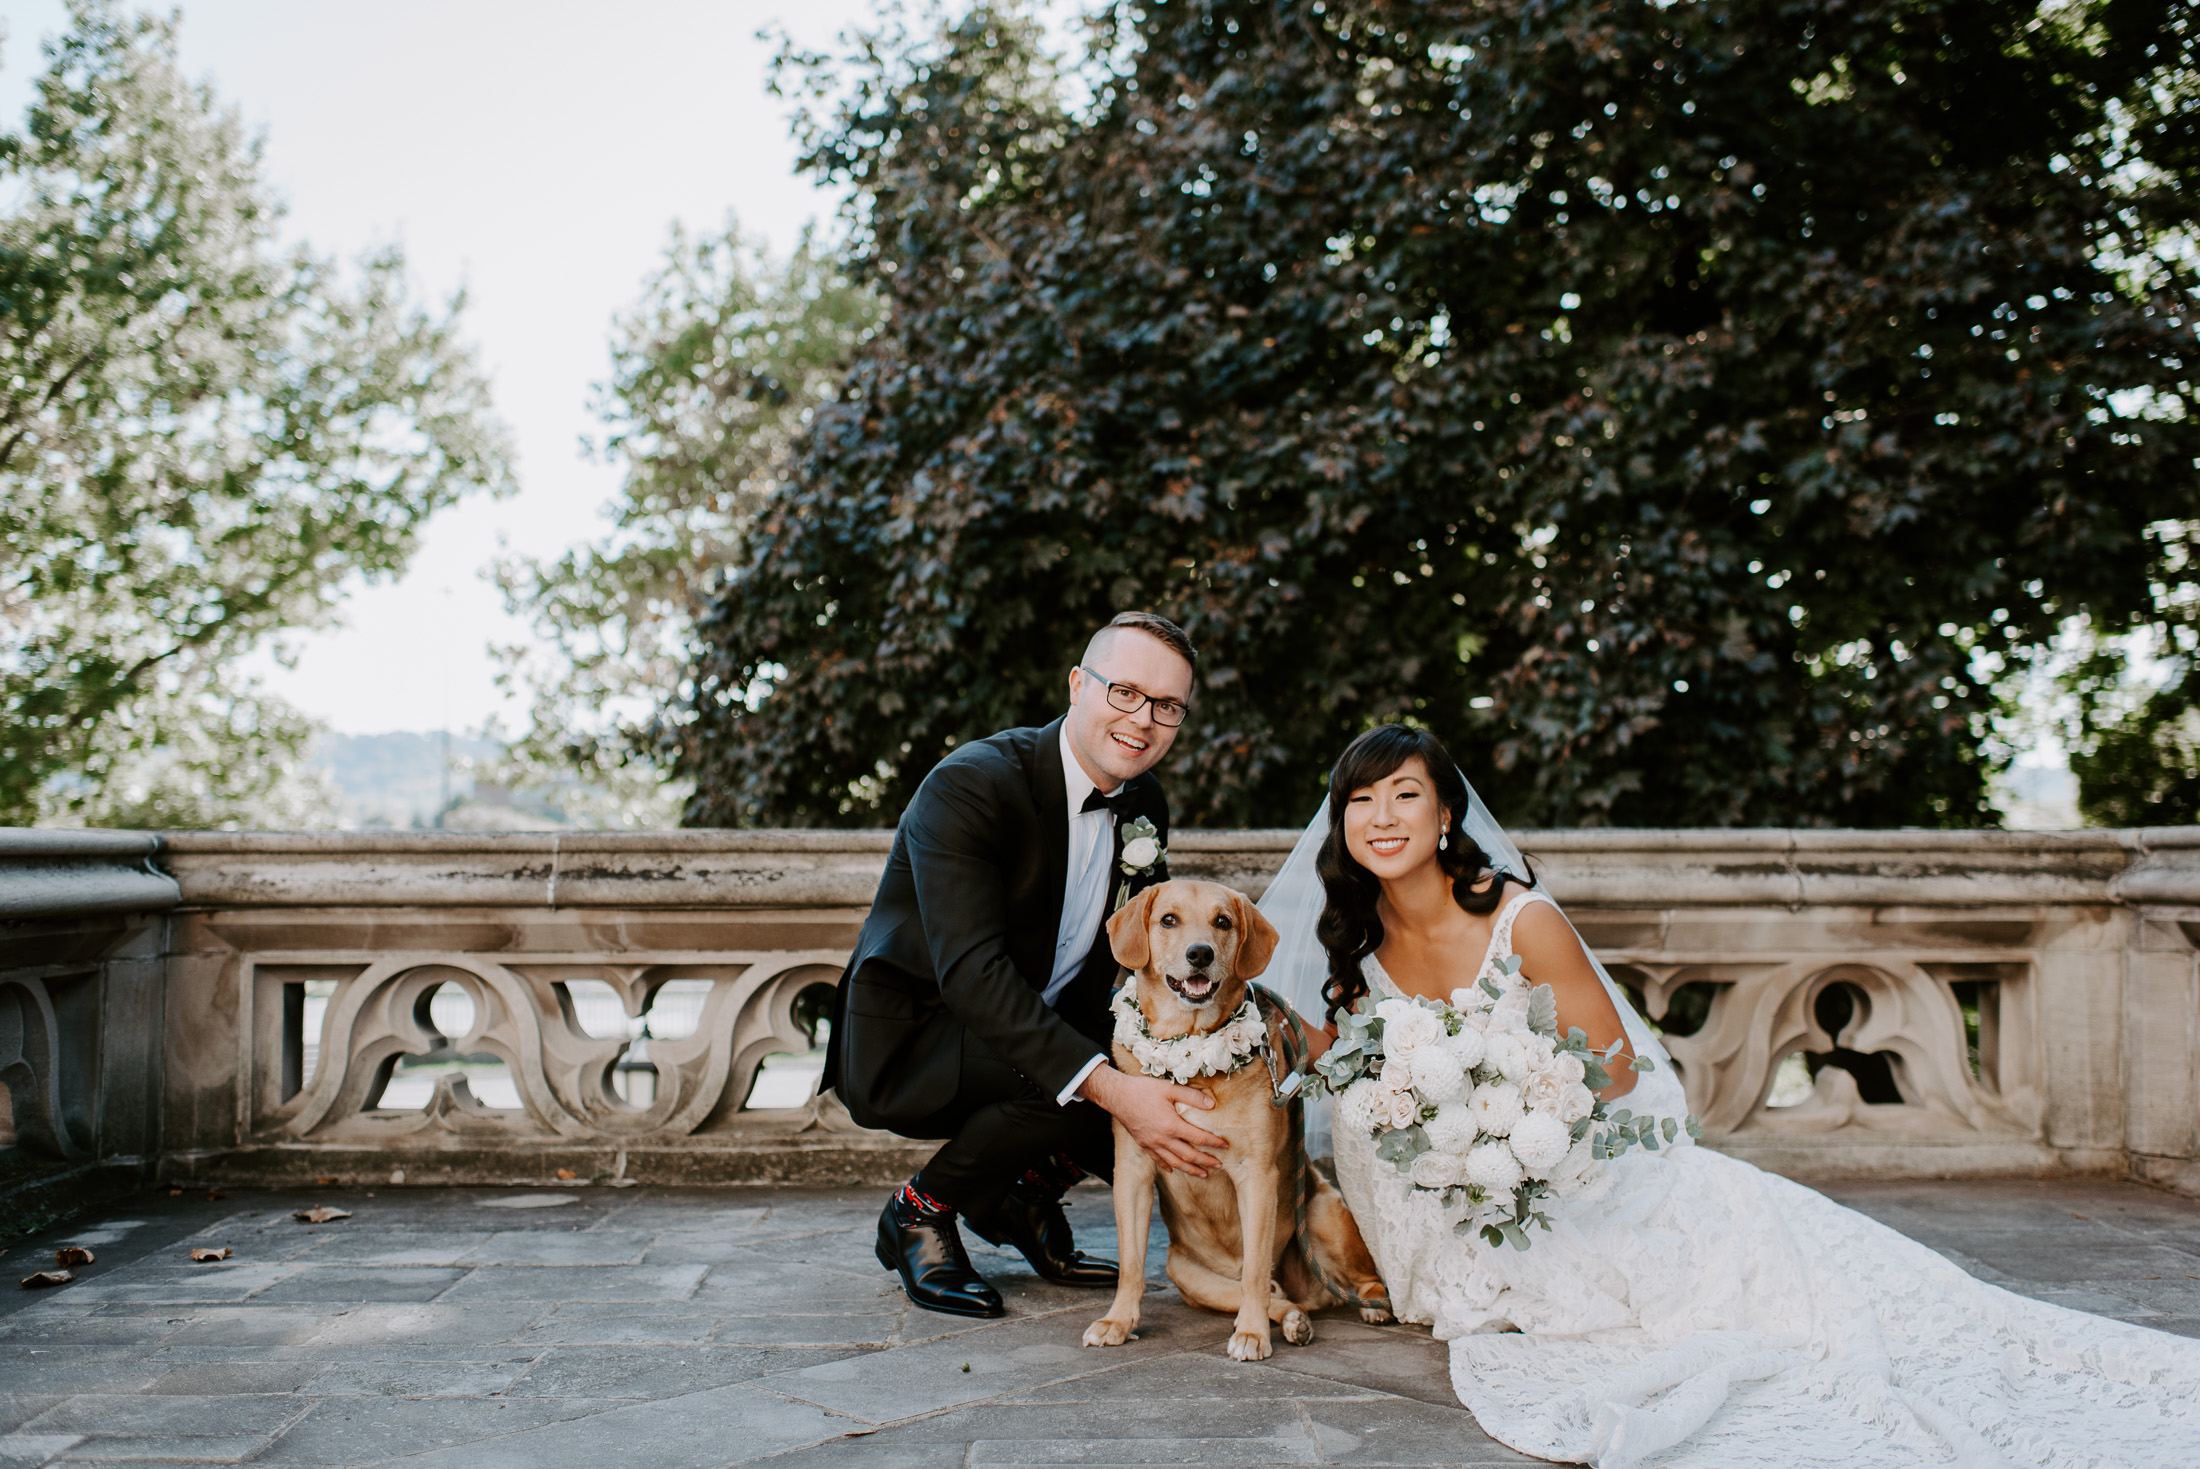 dog on the wedding day